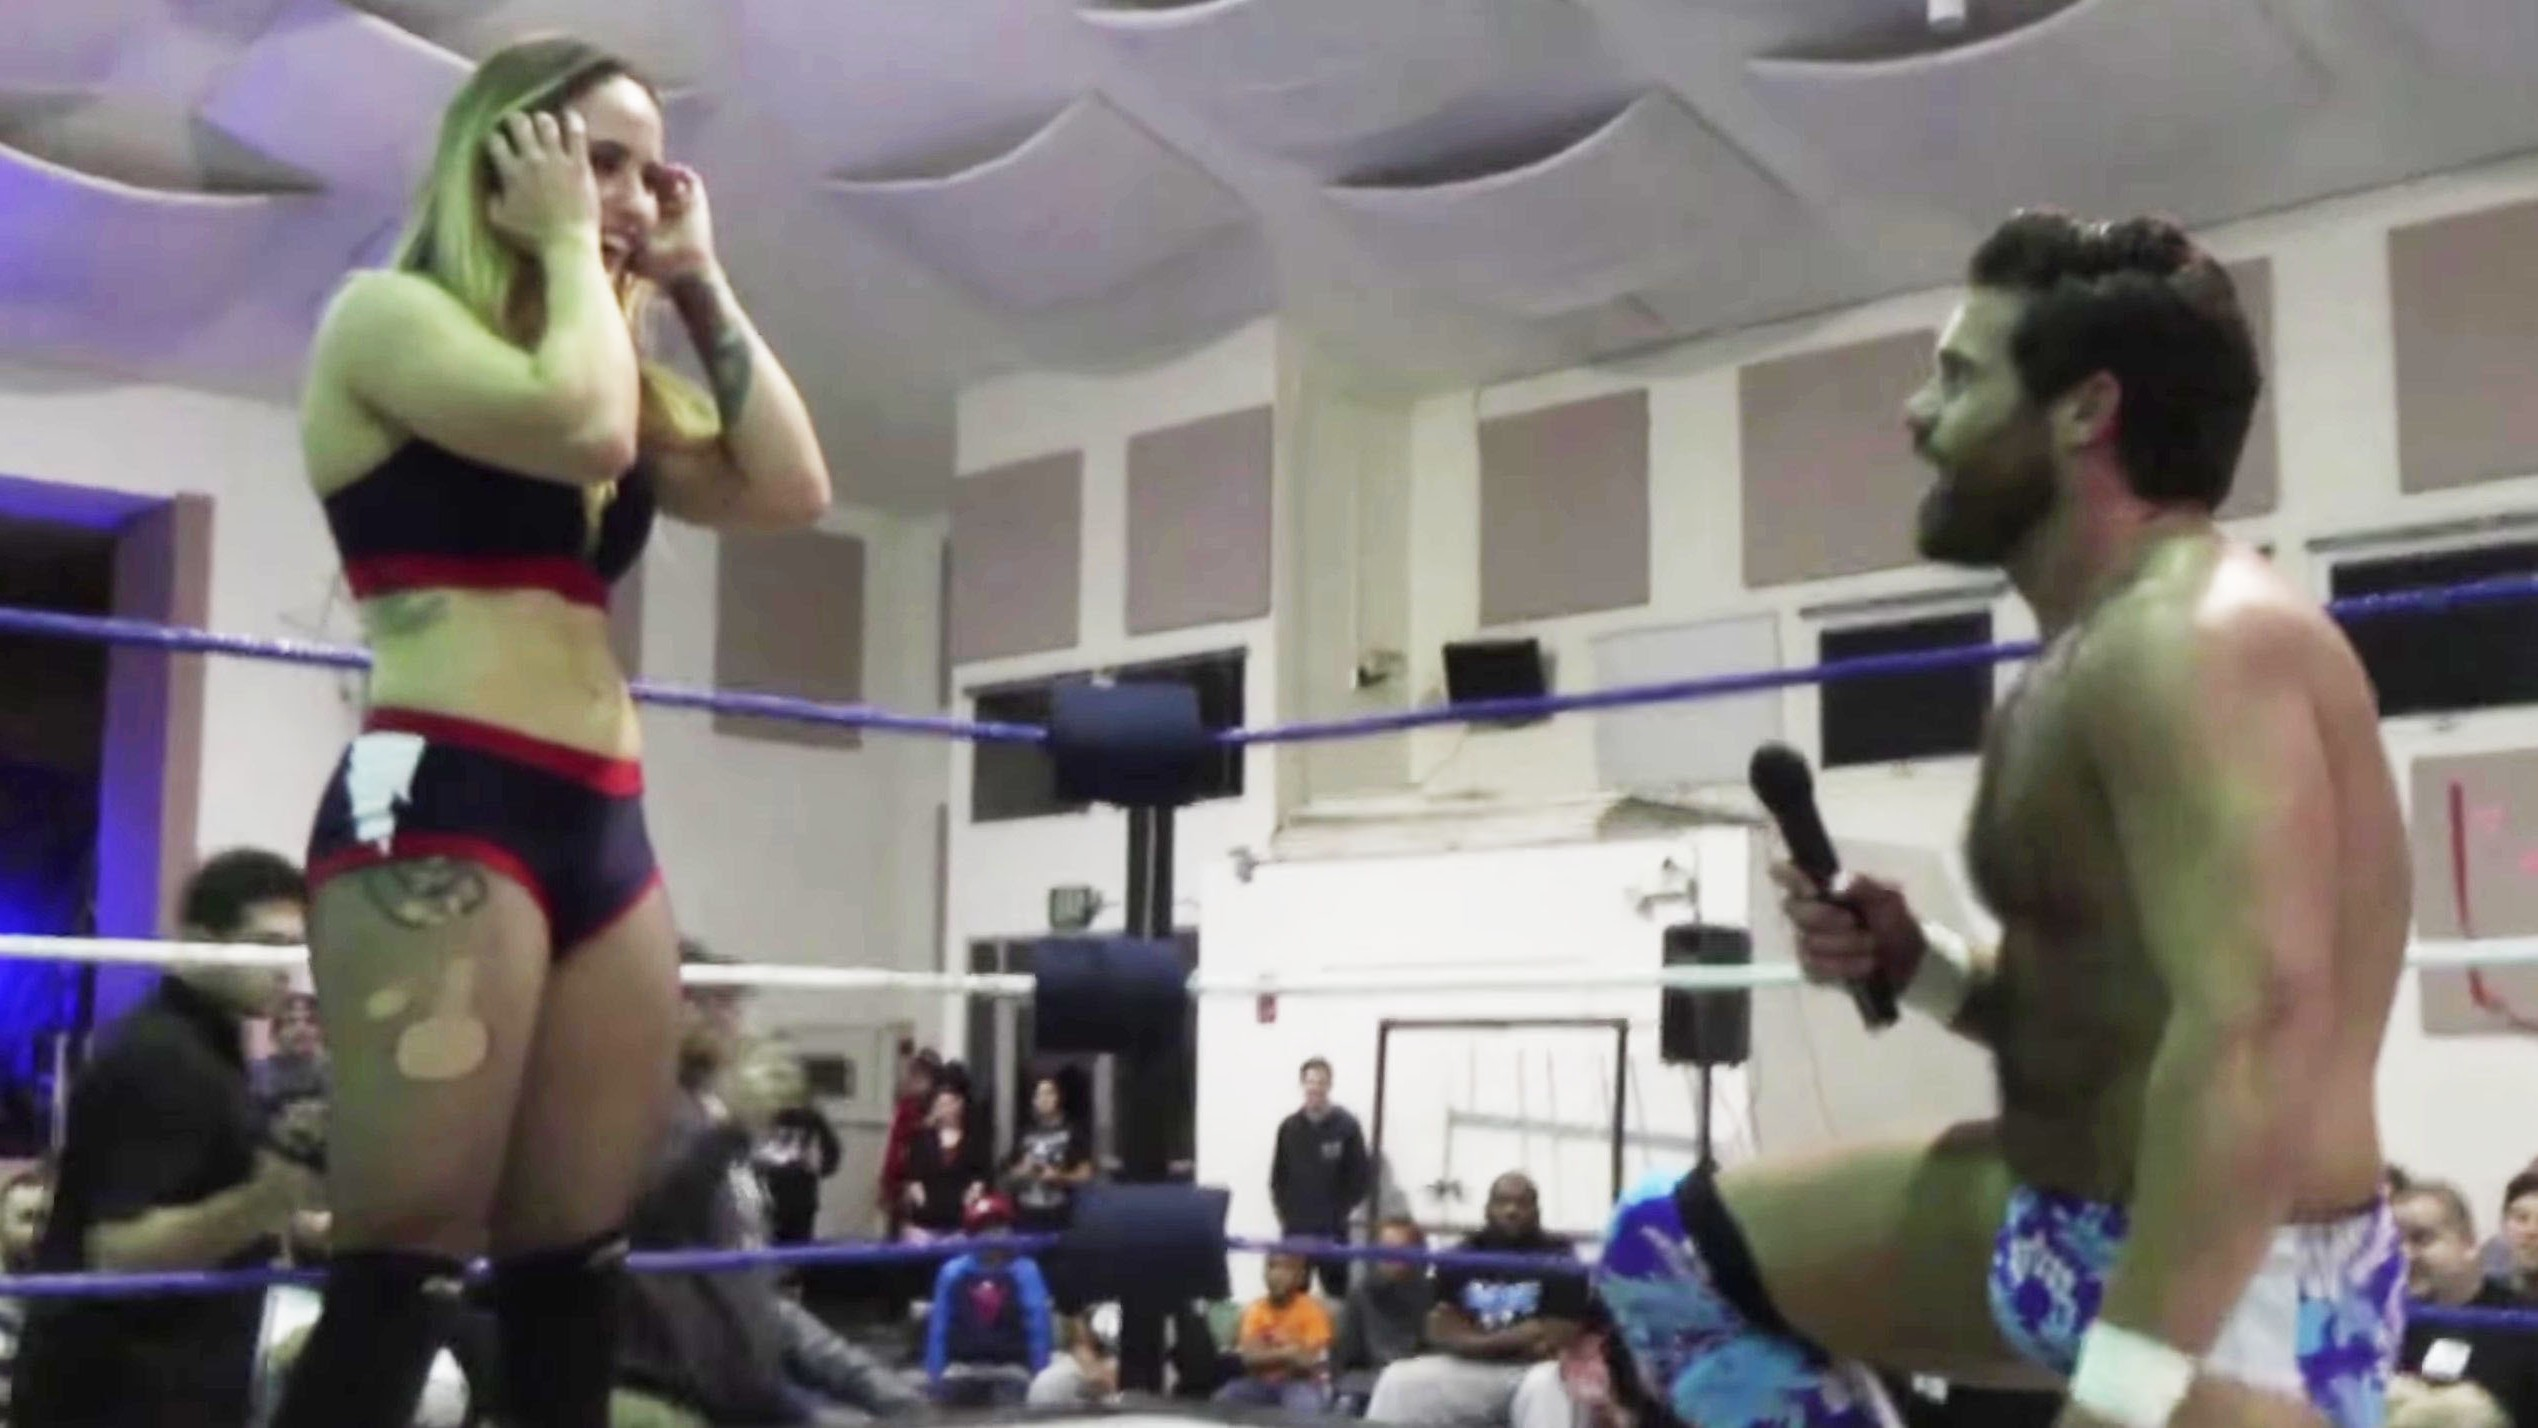 Infamous Dick Flip Wrestler Joey Ryan Proposes to Girlfriend Mid-Wrestling Match, Then Pins Her